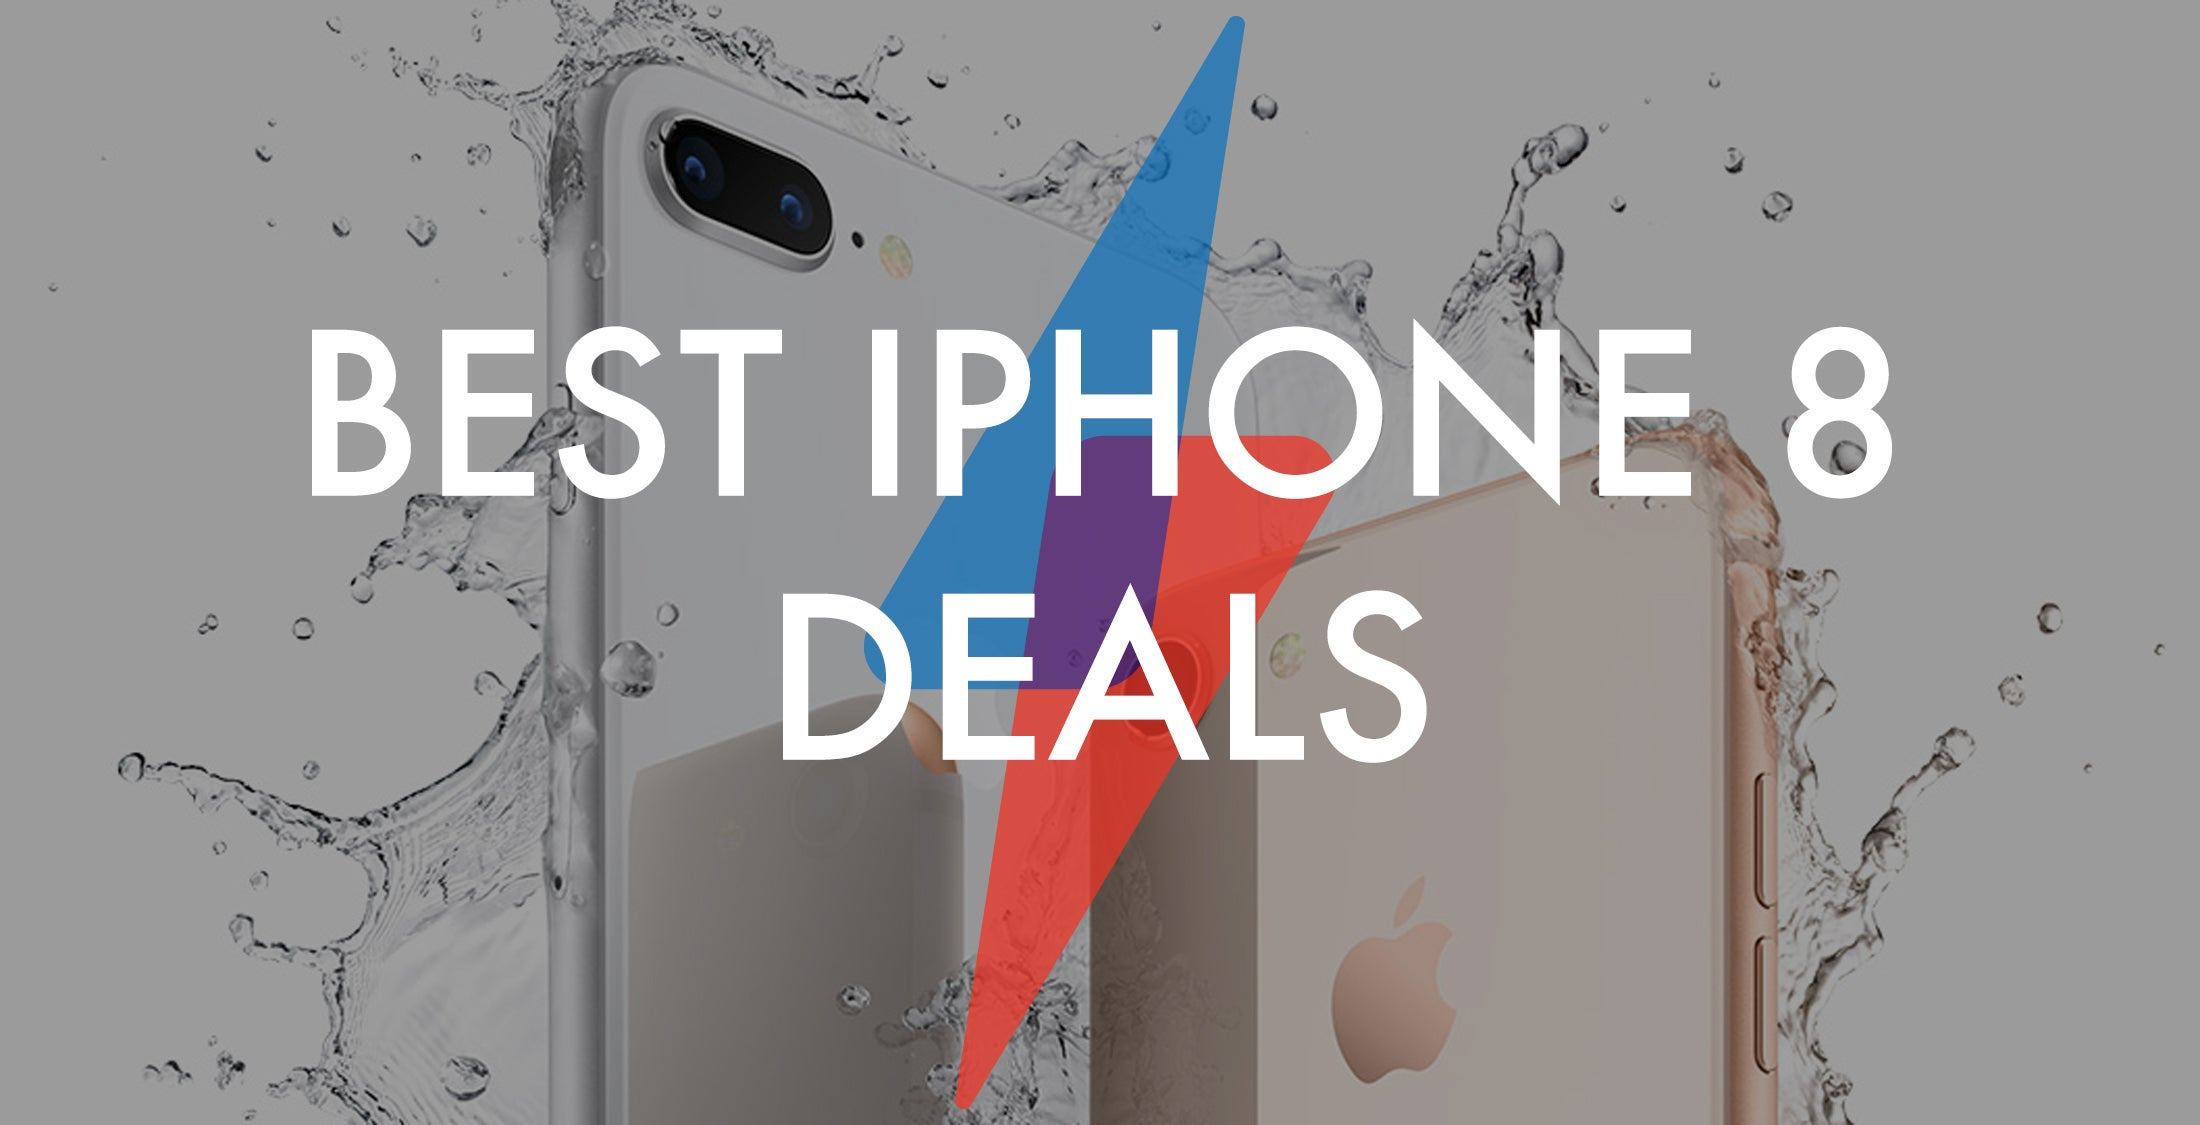 Best Iphone 8 Deals In The Uk For May 2019 Trusted Reviews